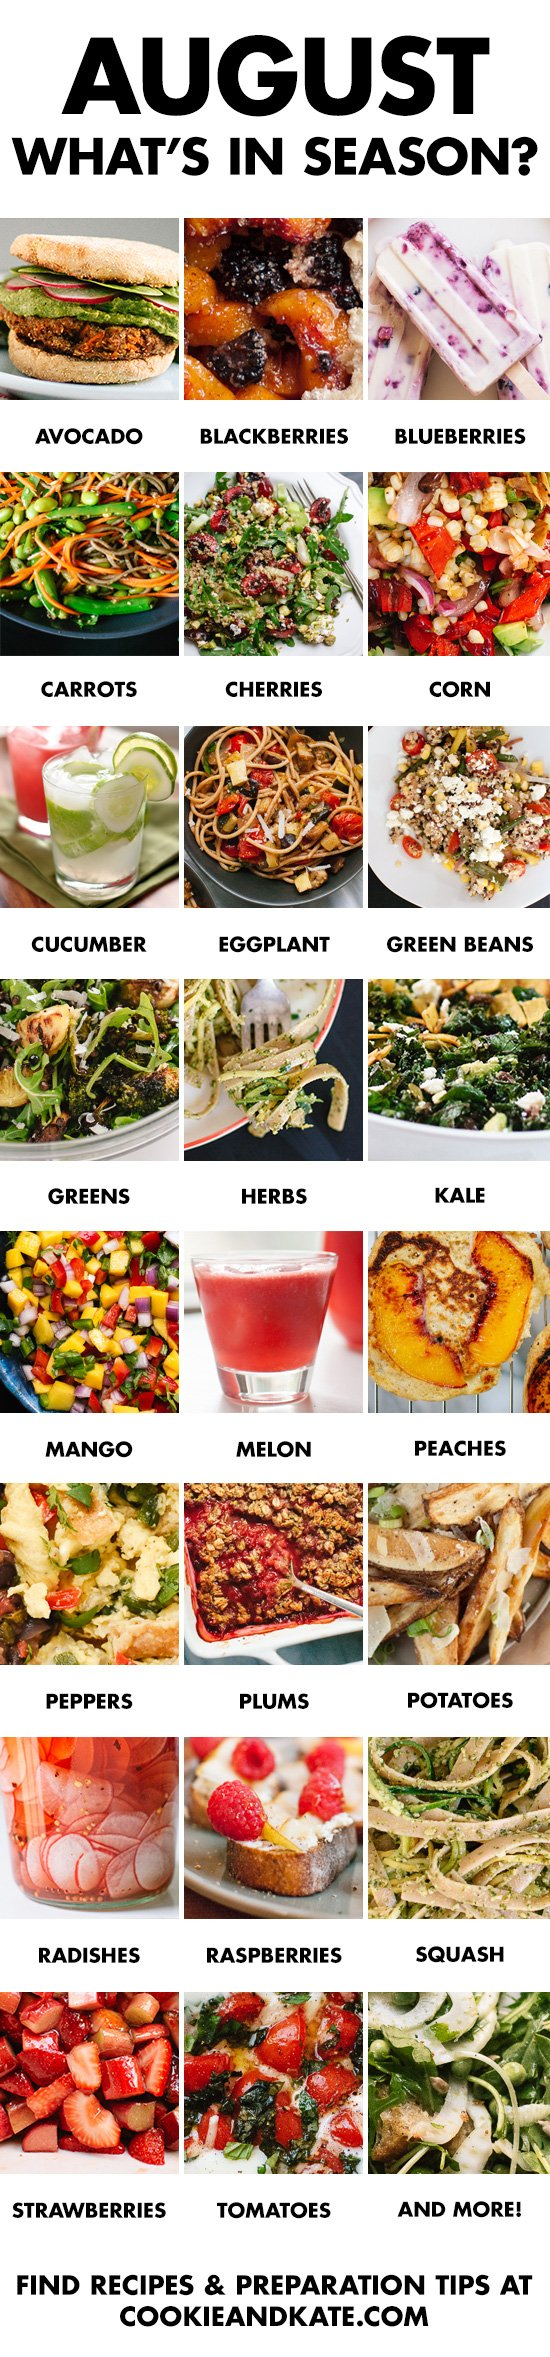 Eat seasonally with this guide to August fruits and vegetables. Find recipes and preparation tips at cookieandkate.com